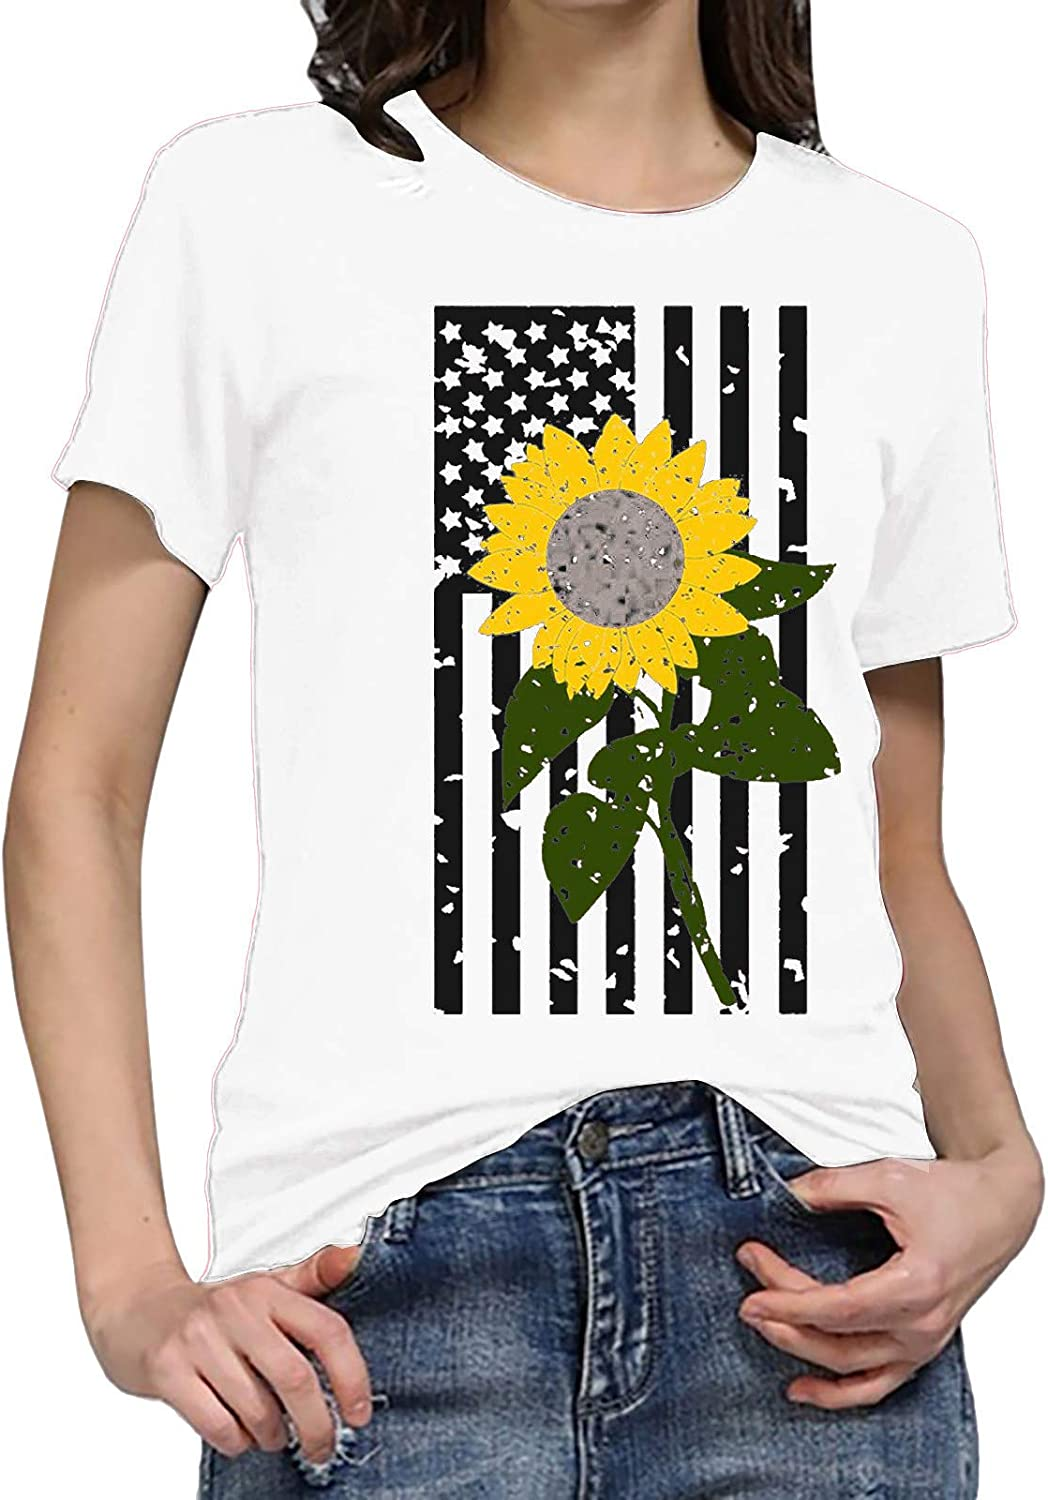 Tops for Women,Women's Short Sleeve Loose Fit Sunflower Print Round Neck T-Shirts Tee Blouses